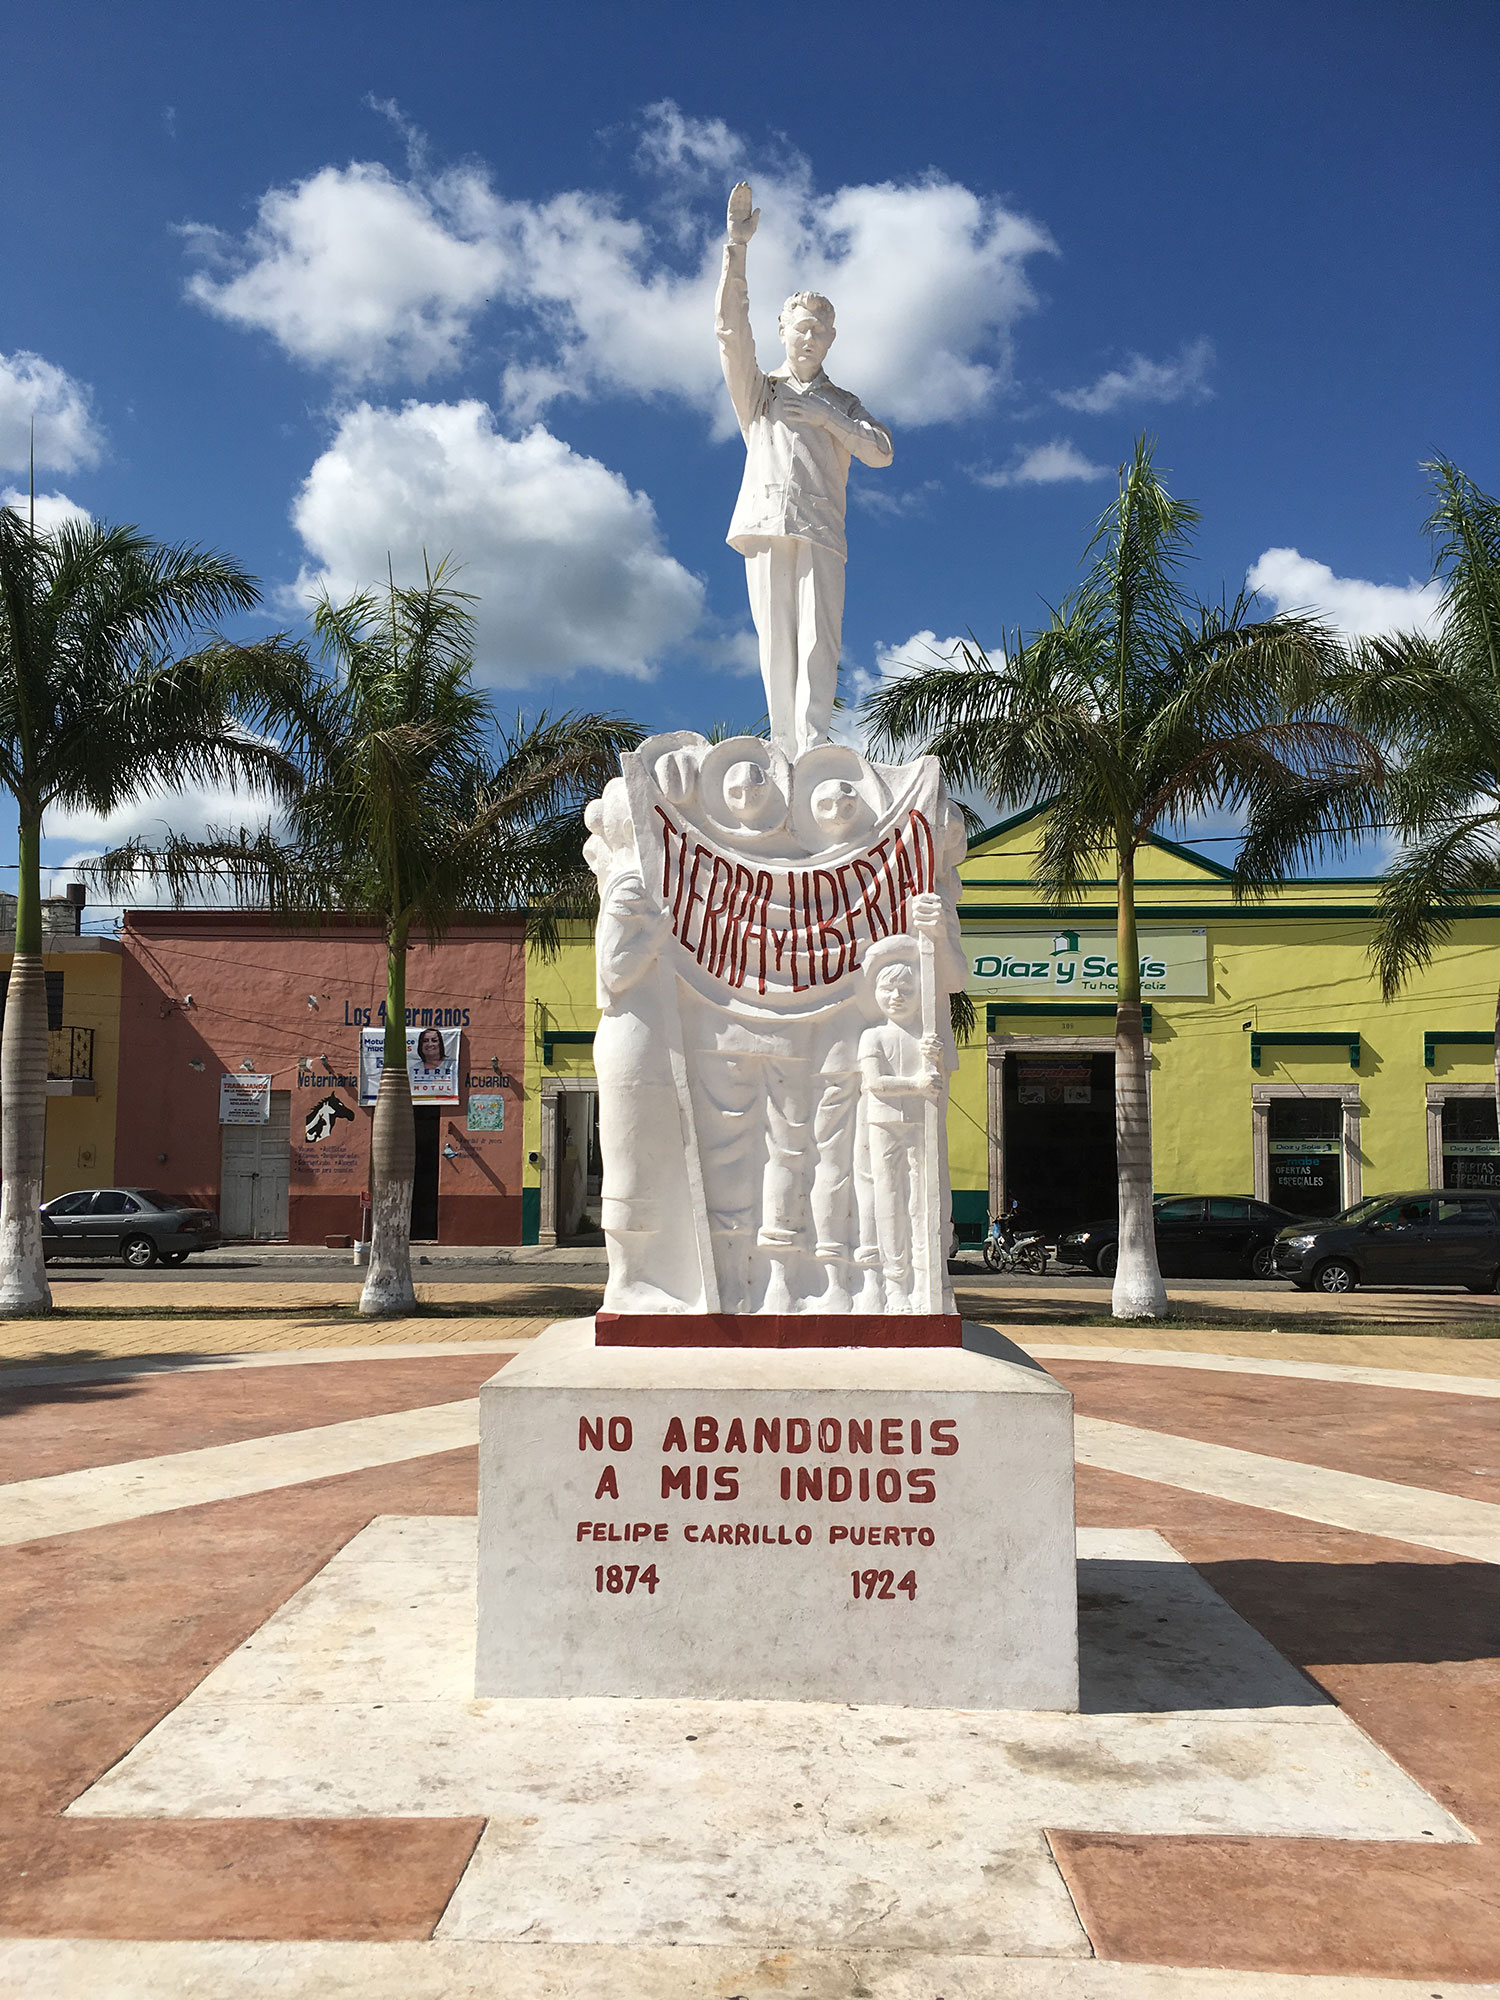 A statue of Felipe Carrillo Puerto at the park flanked by the church.